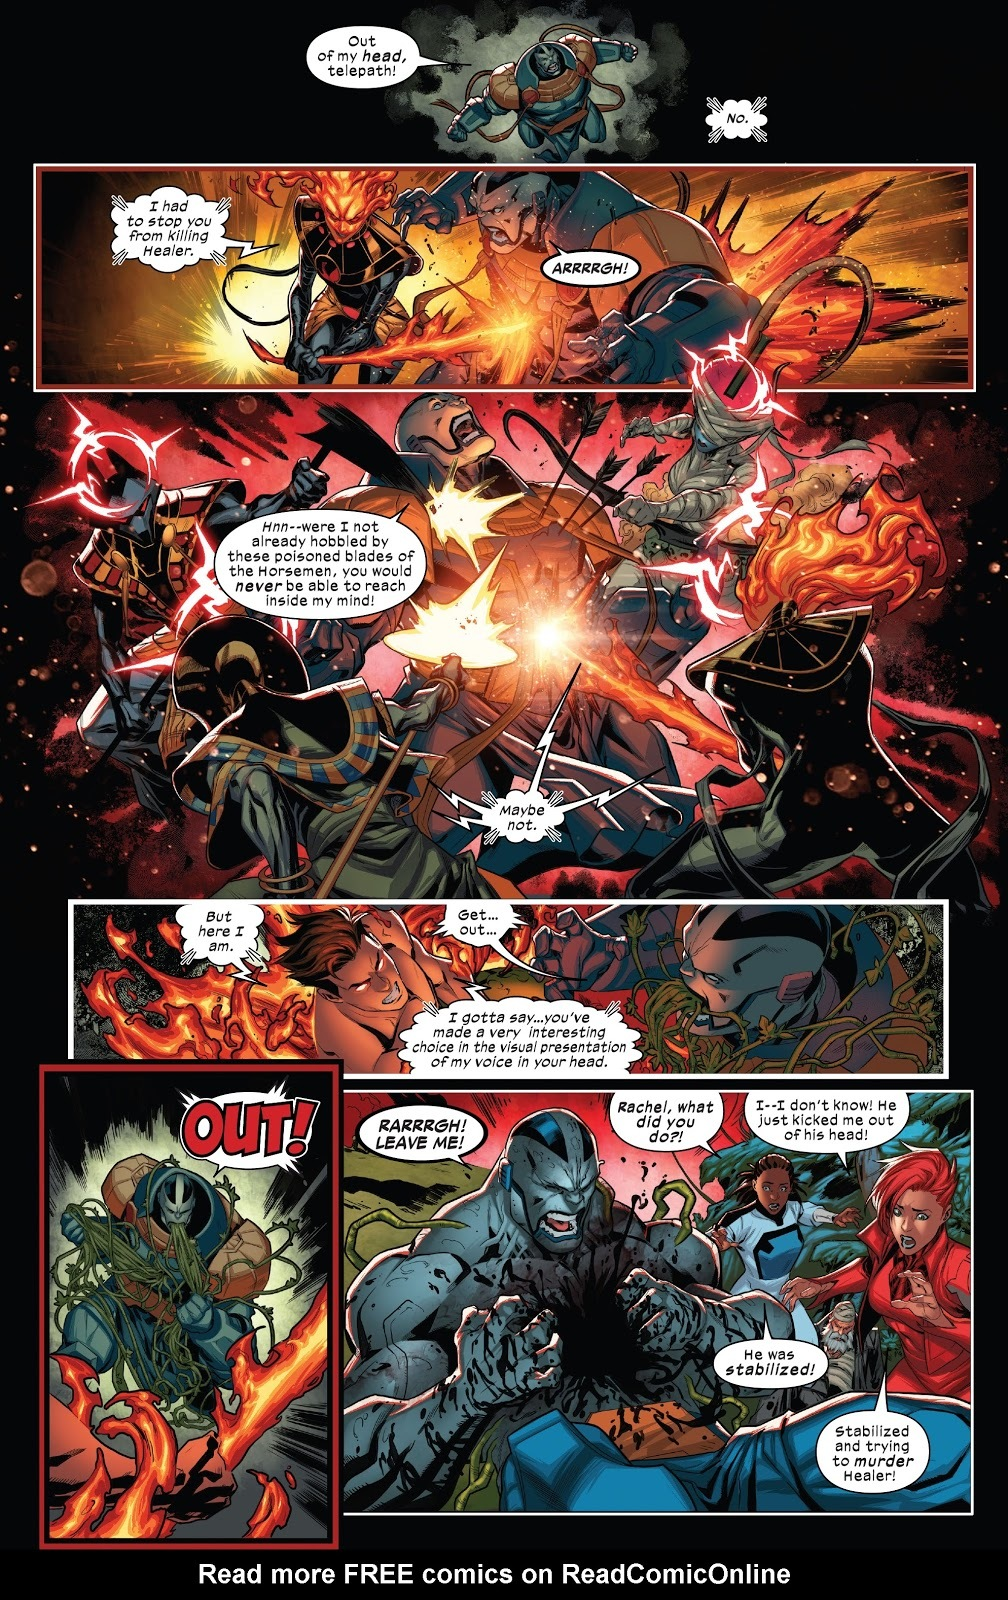 Breaks into the mind of an injured Apocalypse in order to restrain him, forcing him to rip open his own chest to get her out of his head - X of Swords part 2, X-Factor #4